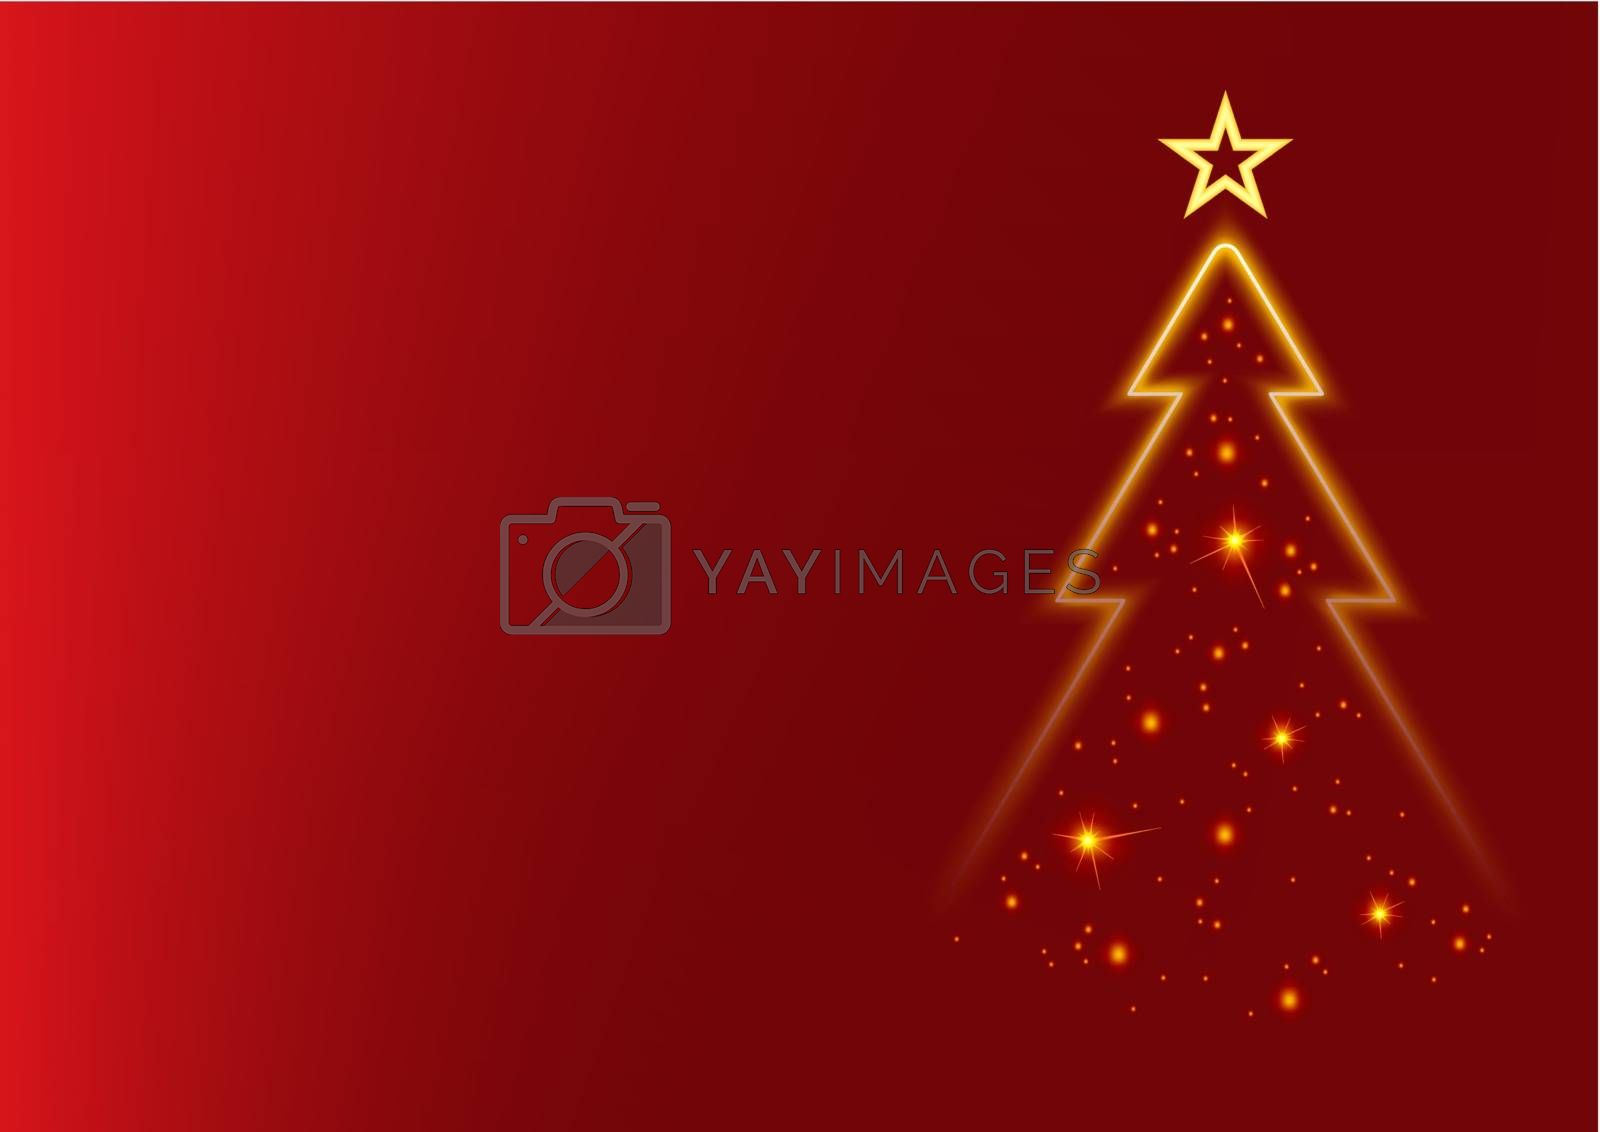 Abstract Christmas Tree - Colored Background Illustration, Vector